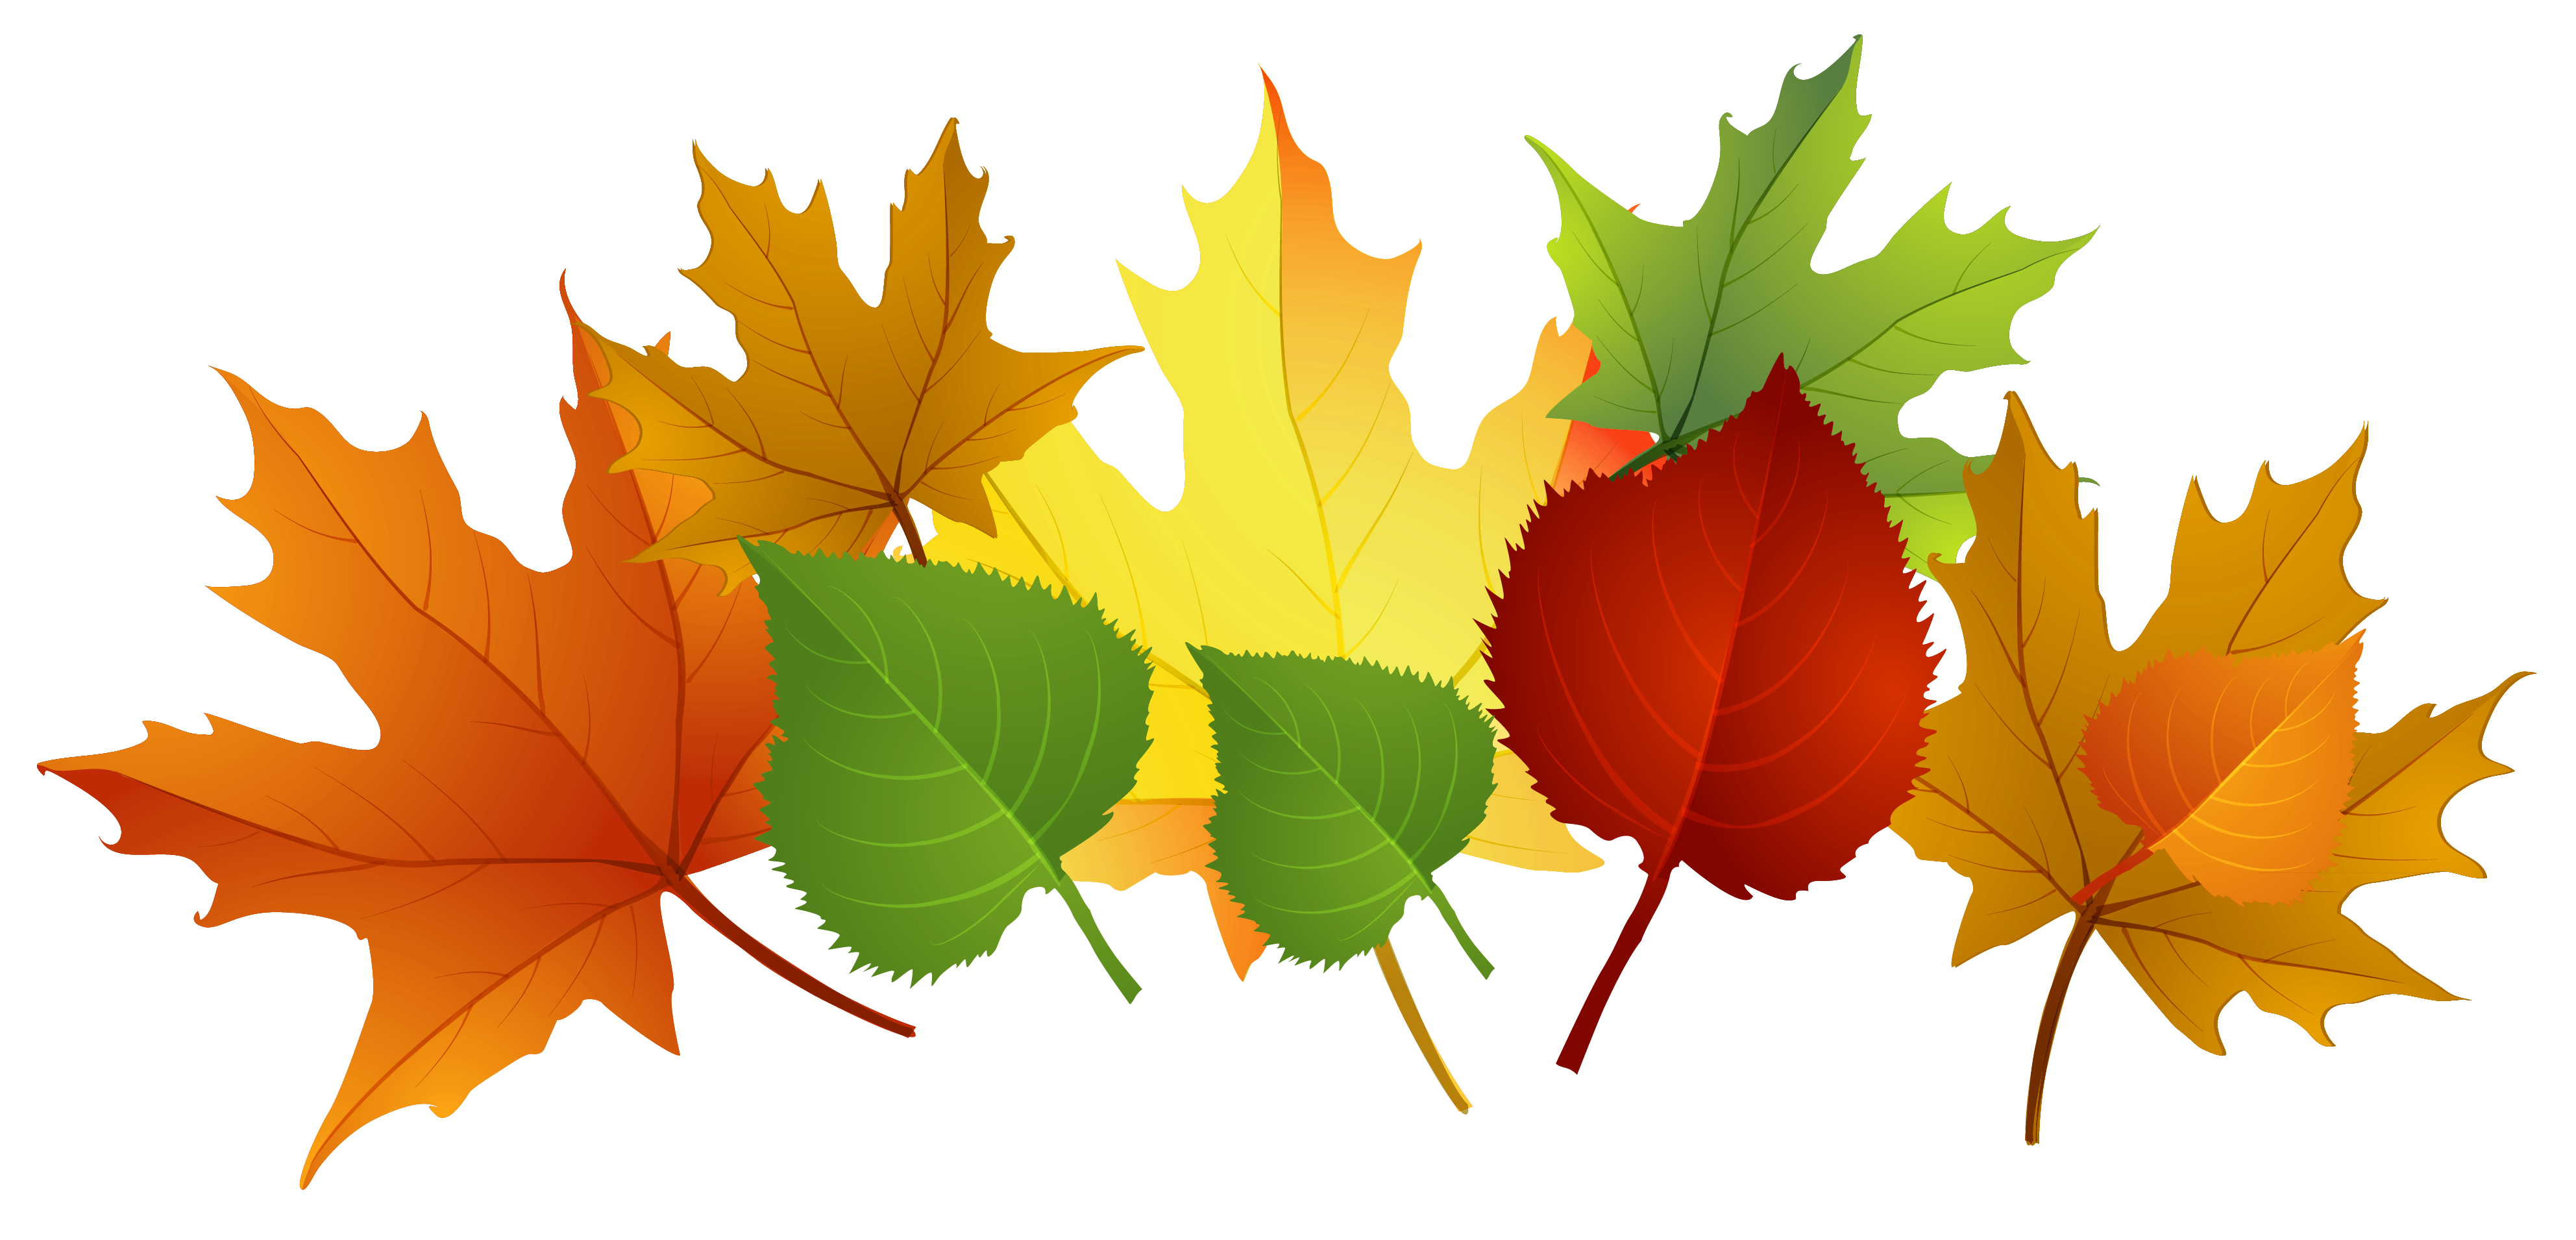 Fall Leaf Clip Art Free Cliparts That Yo-Fall Leaf Clip Art Free Cliparts That You Can Download To You-2